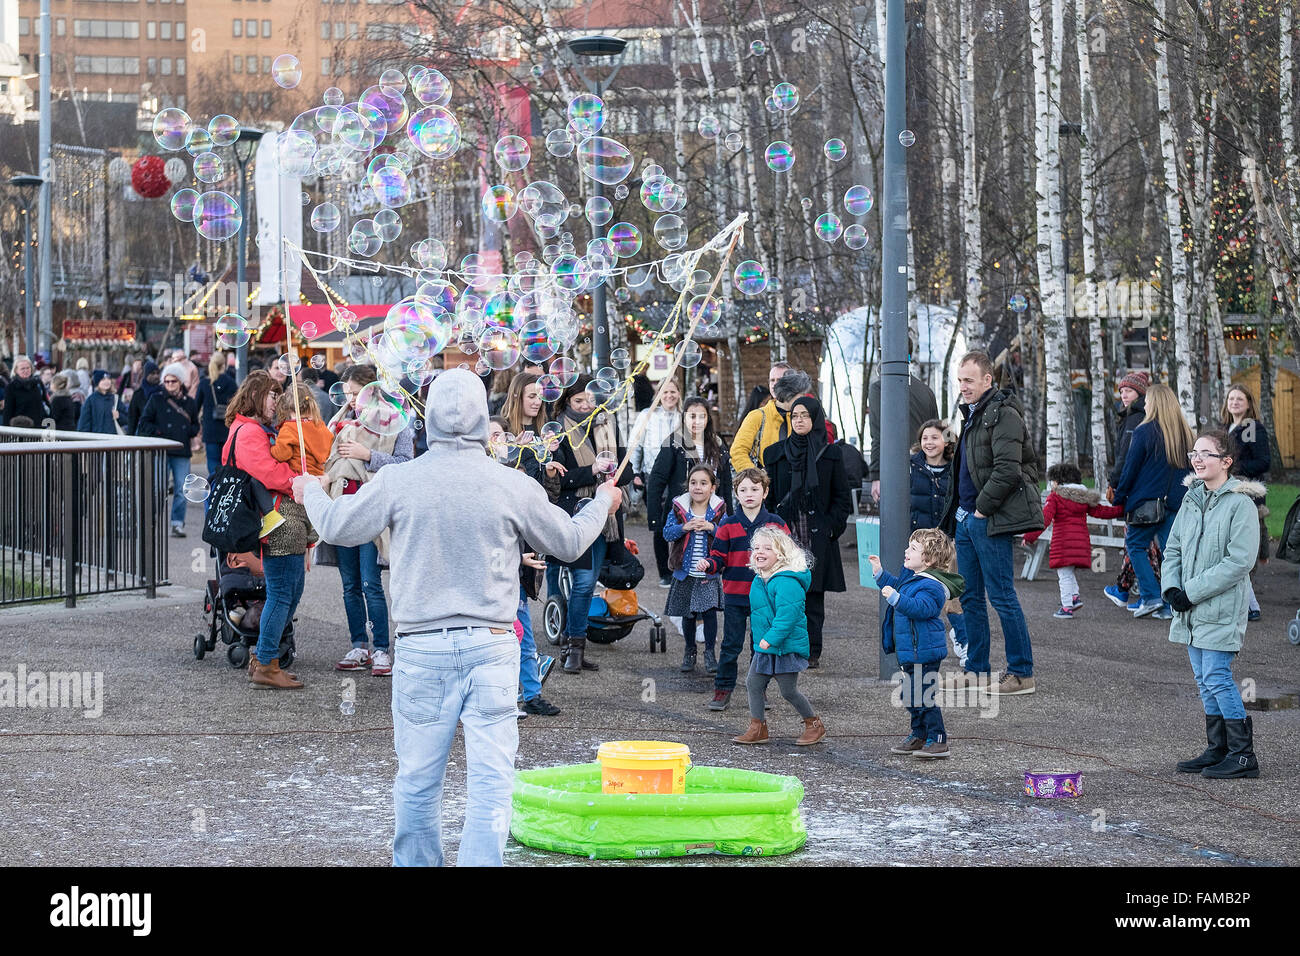 A street entertainer creates bubbles to amuse children and their parents on the South Bank in London. - Stock Image